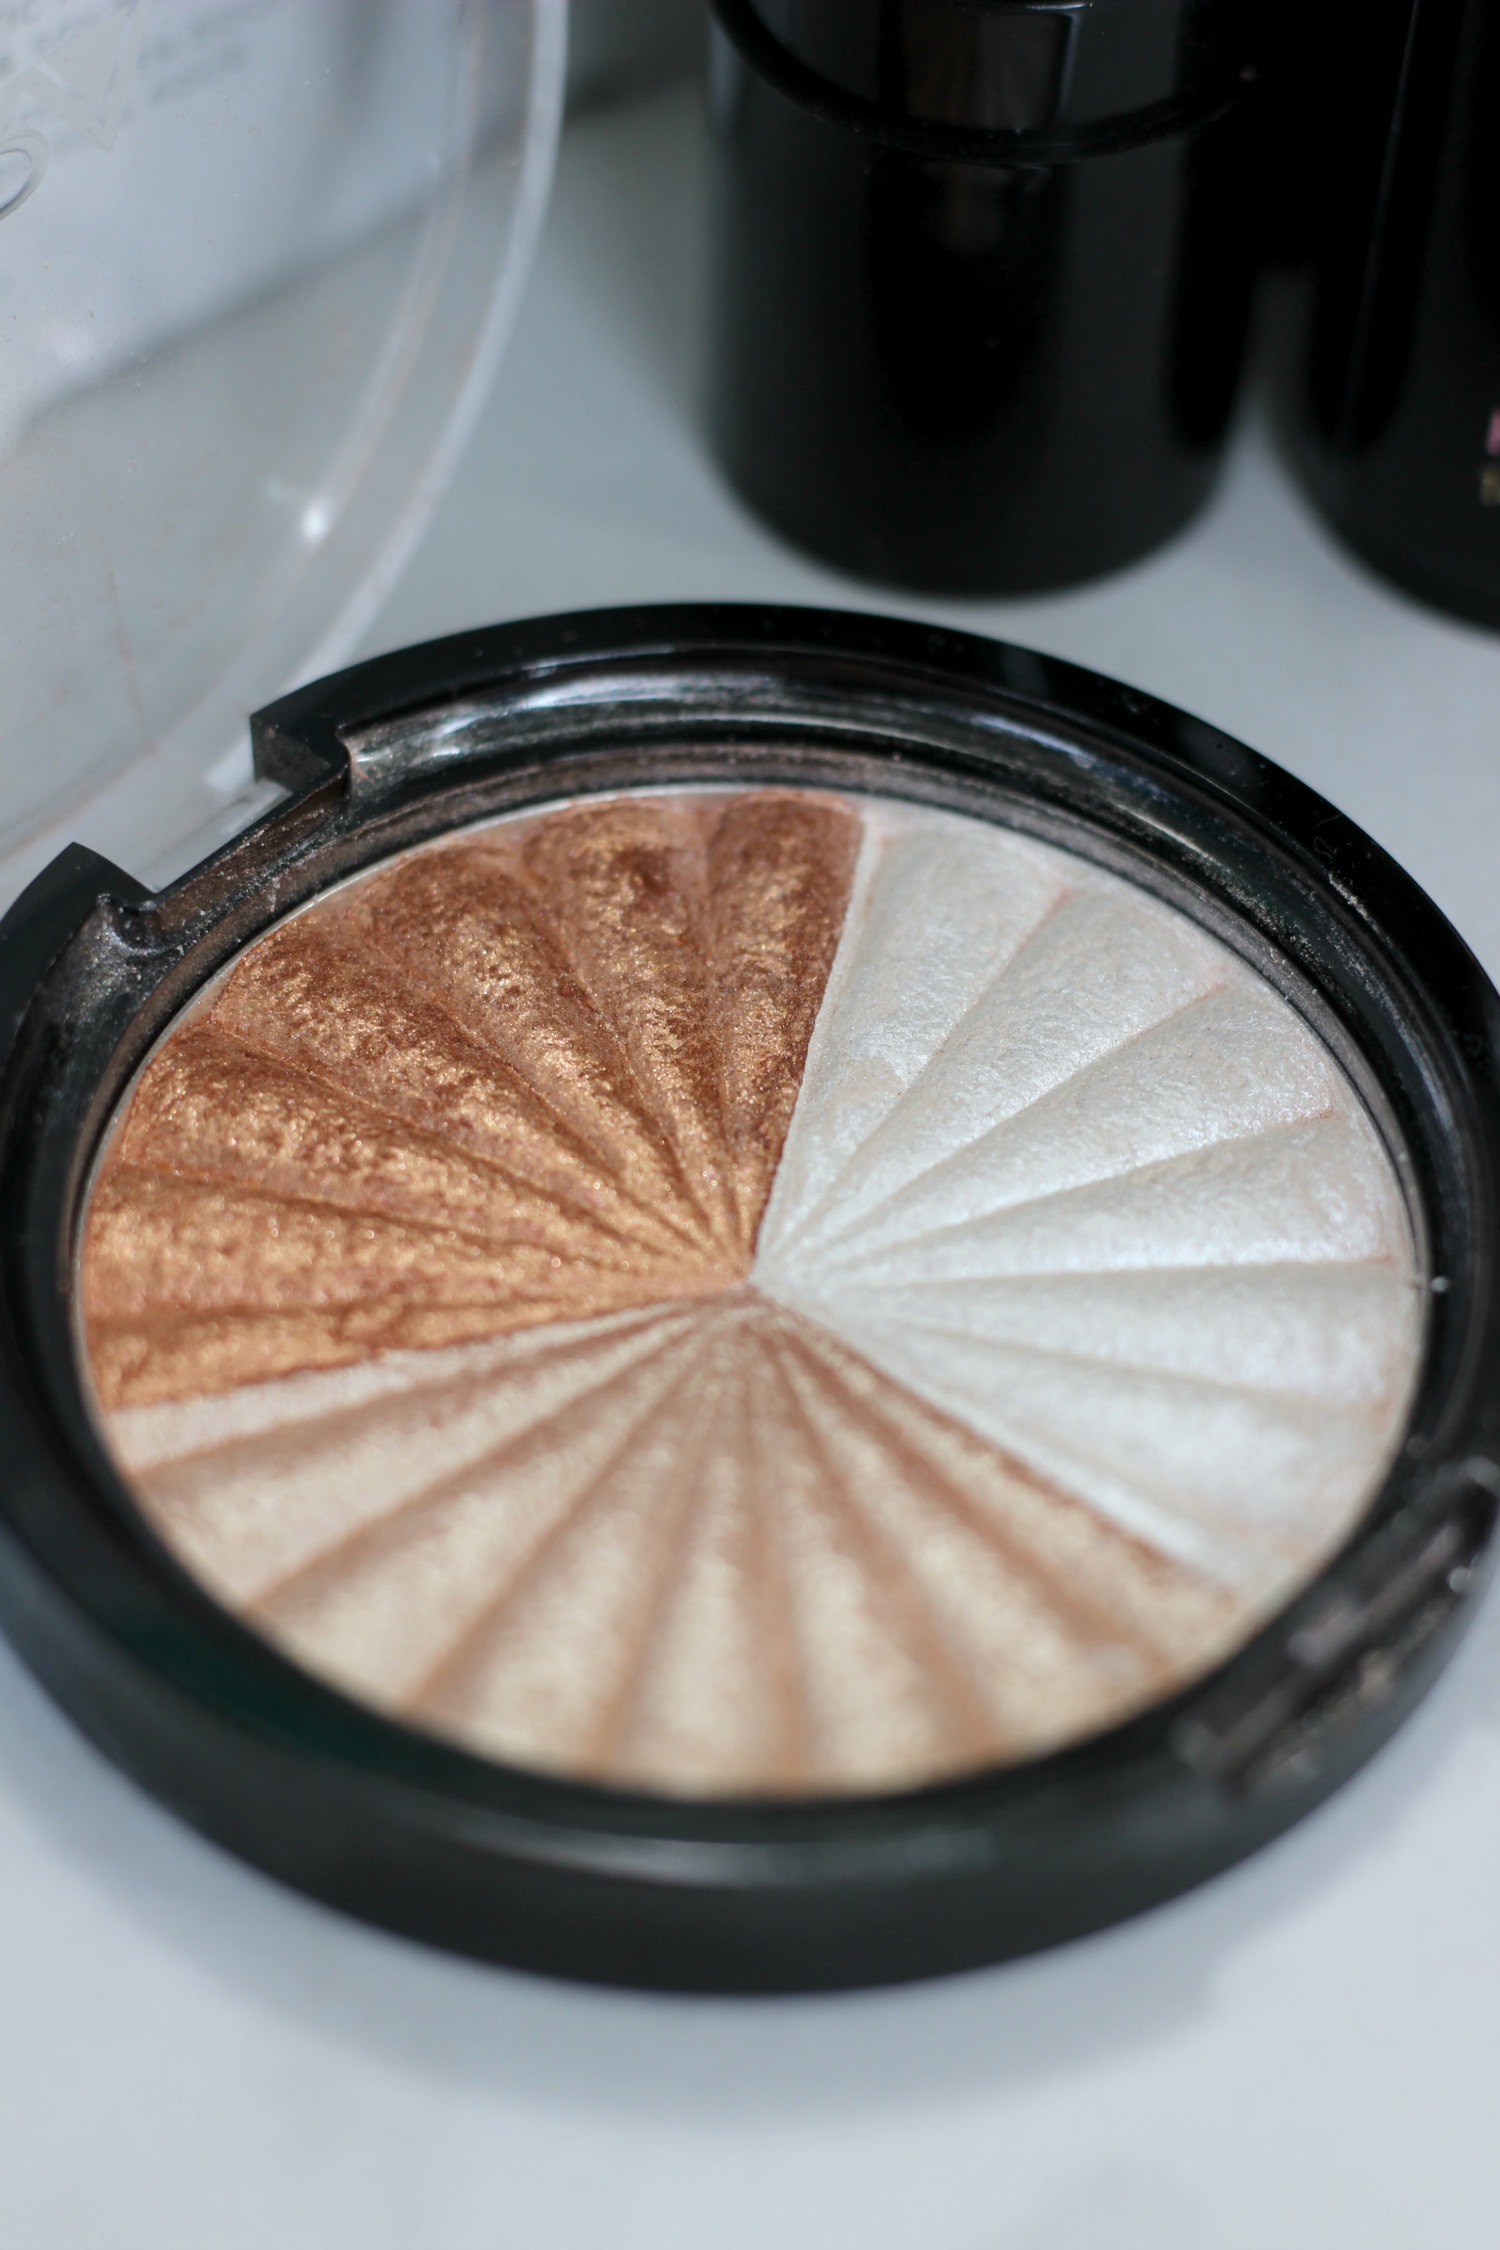 Favorite Products Glowing Skin OFRA Highlighter Everglow Close Up